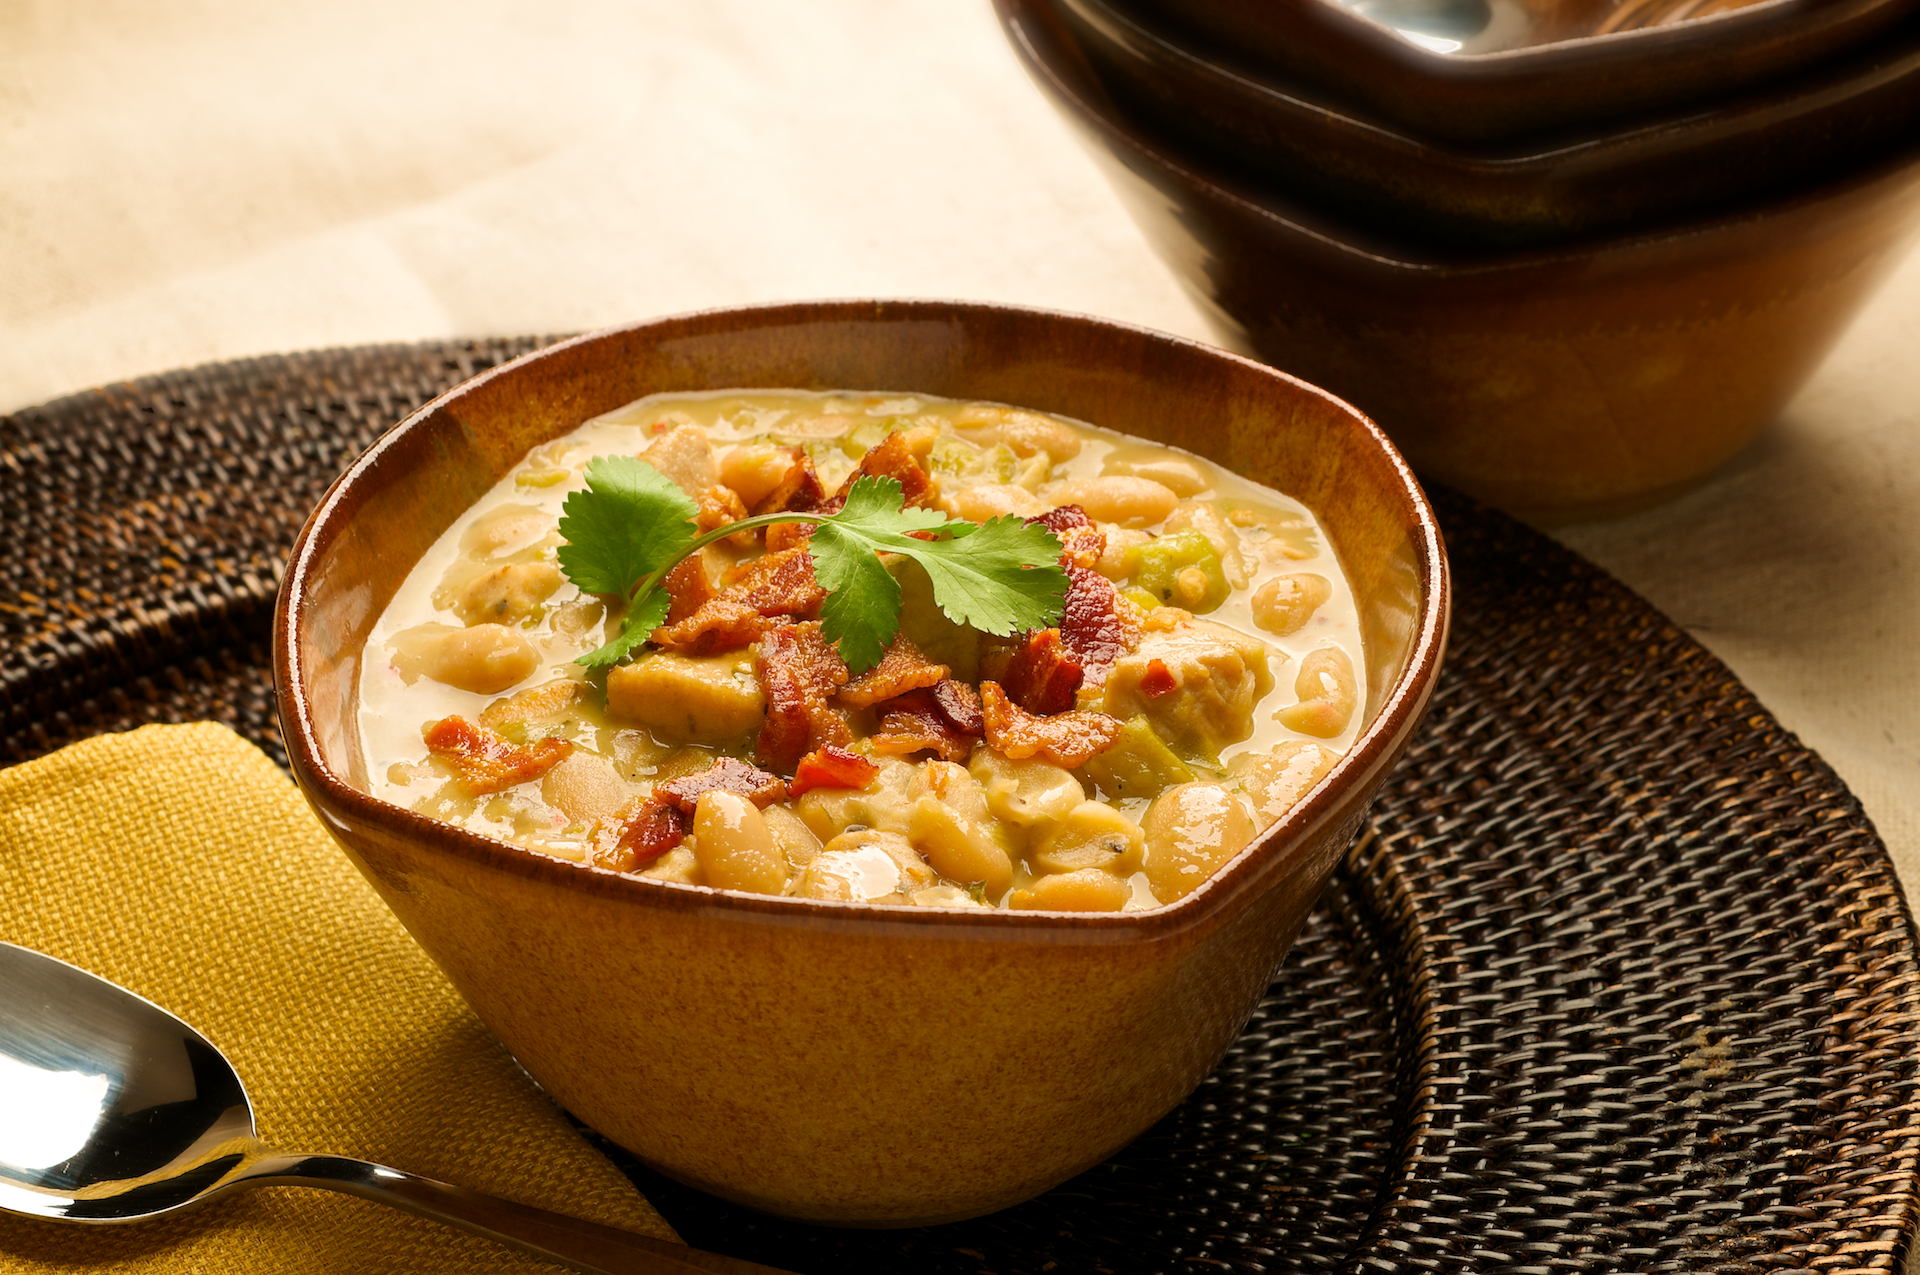 Here's a crowd-pleasing, white-meat alternative to chili made with beef. This White Chicken Chili is ideal for basketball or football watch parties, tailgating, and casual gatherings!